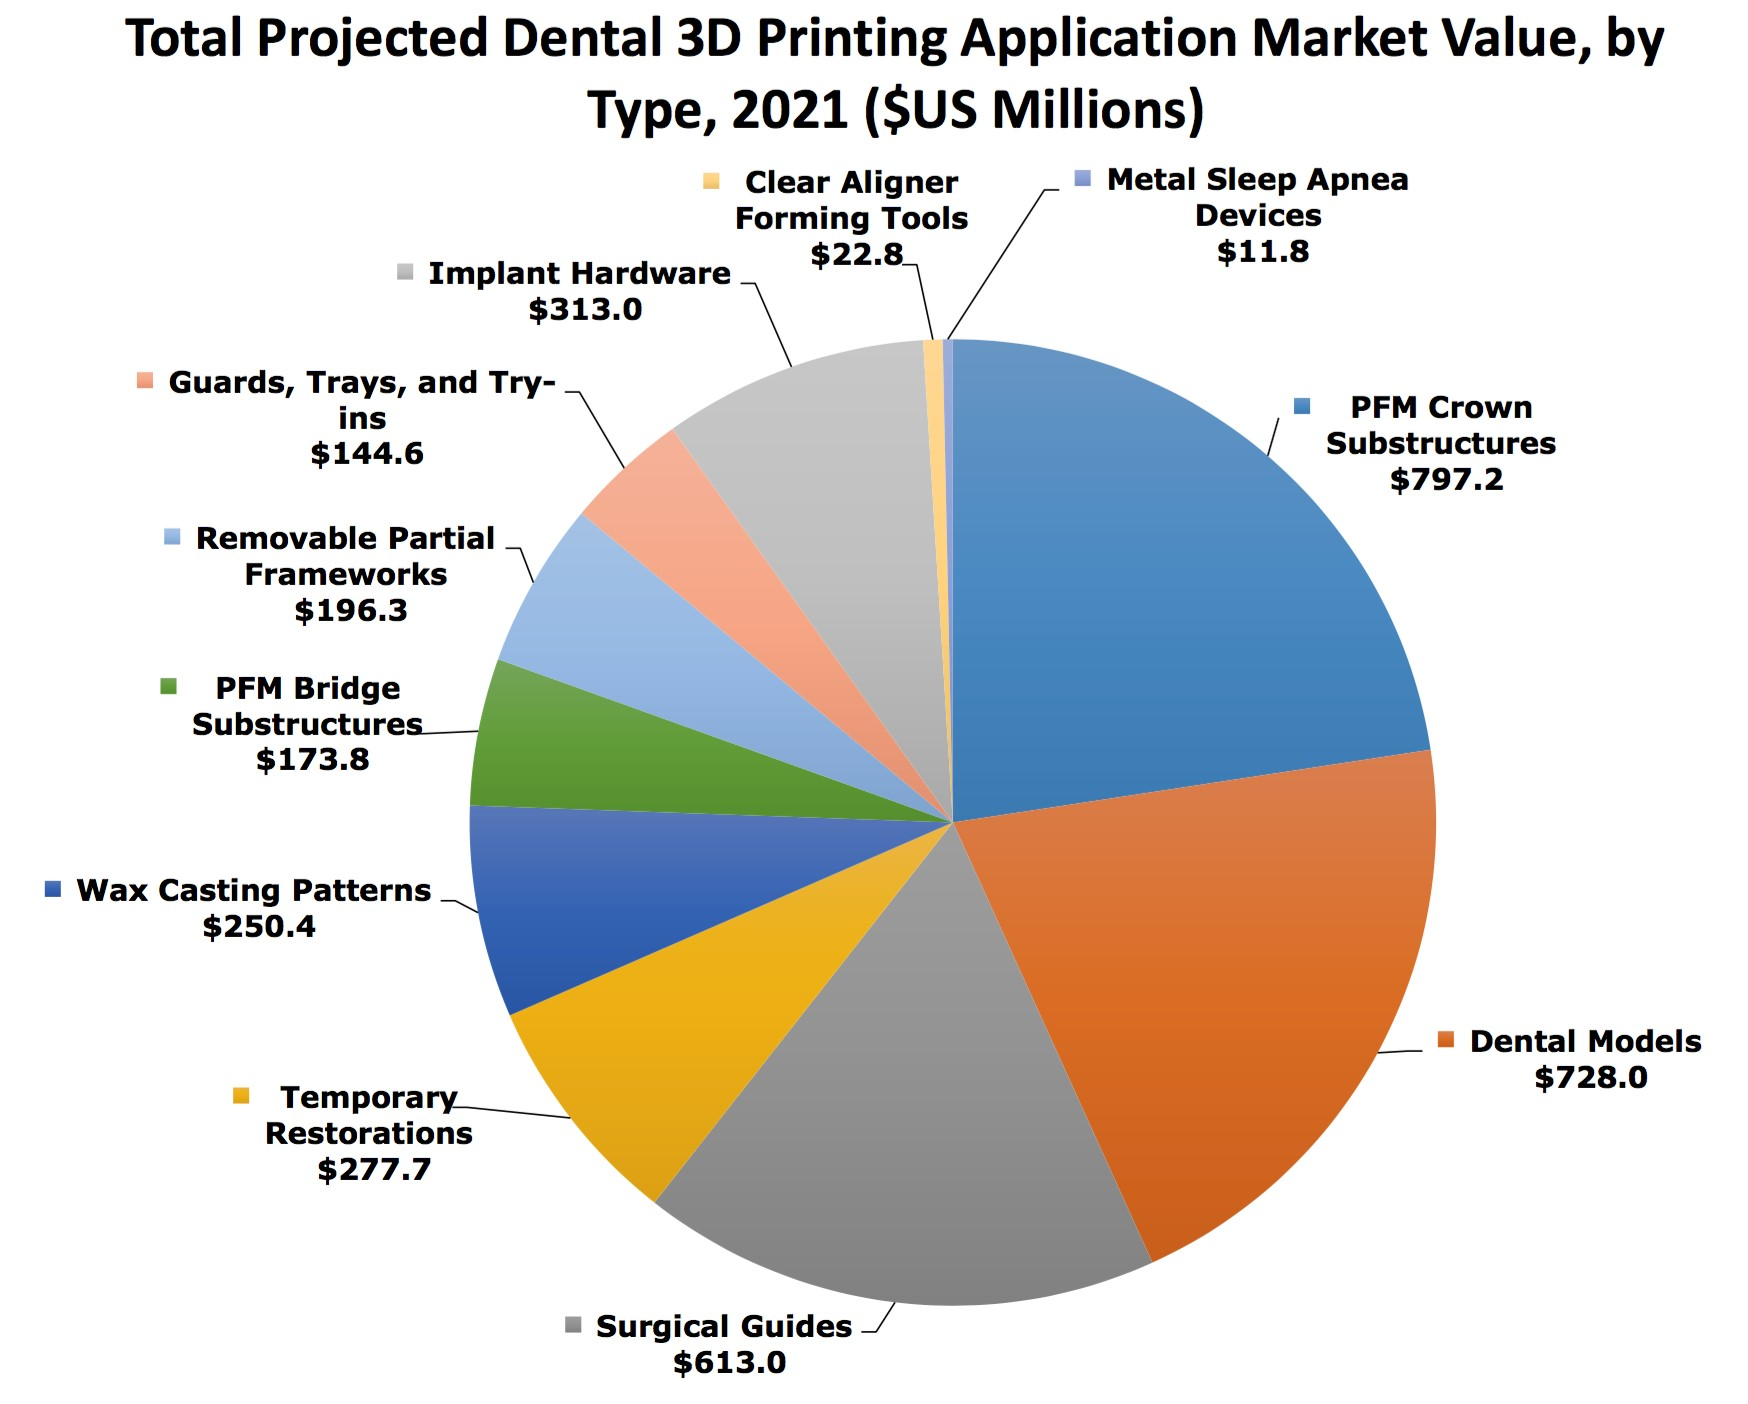 Smartech publishing revenues from 3d printing in 3d application